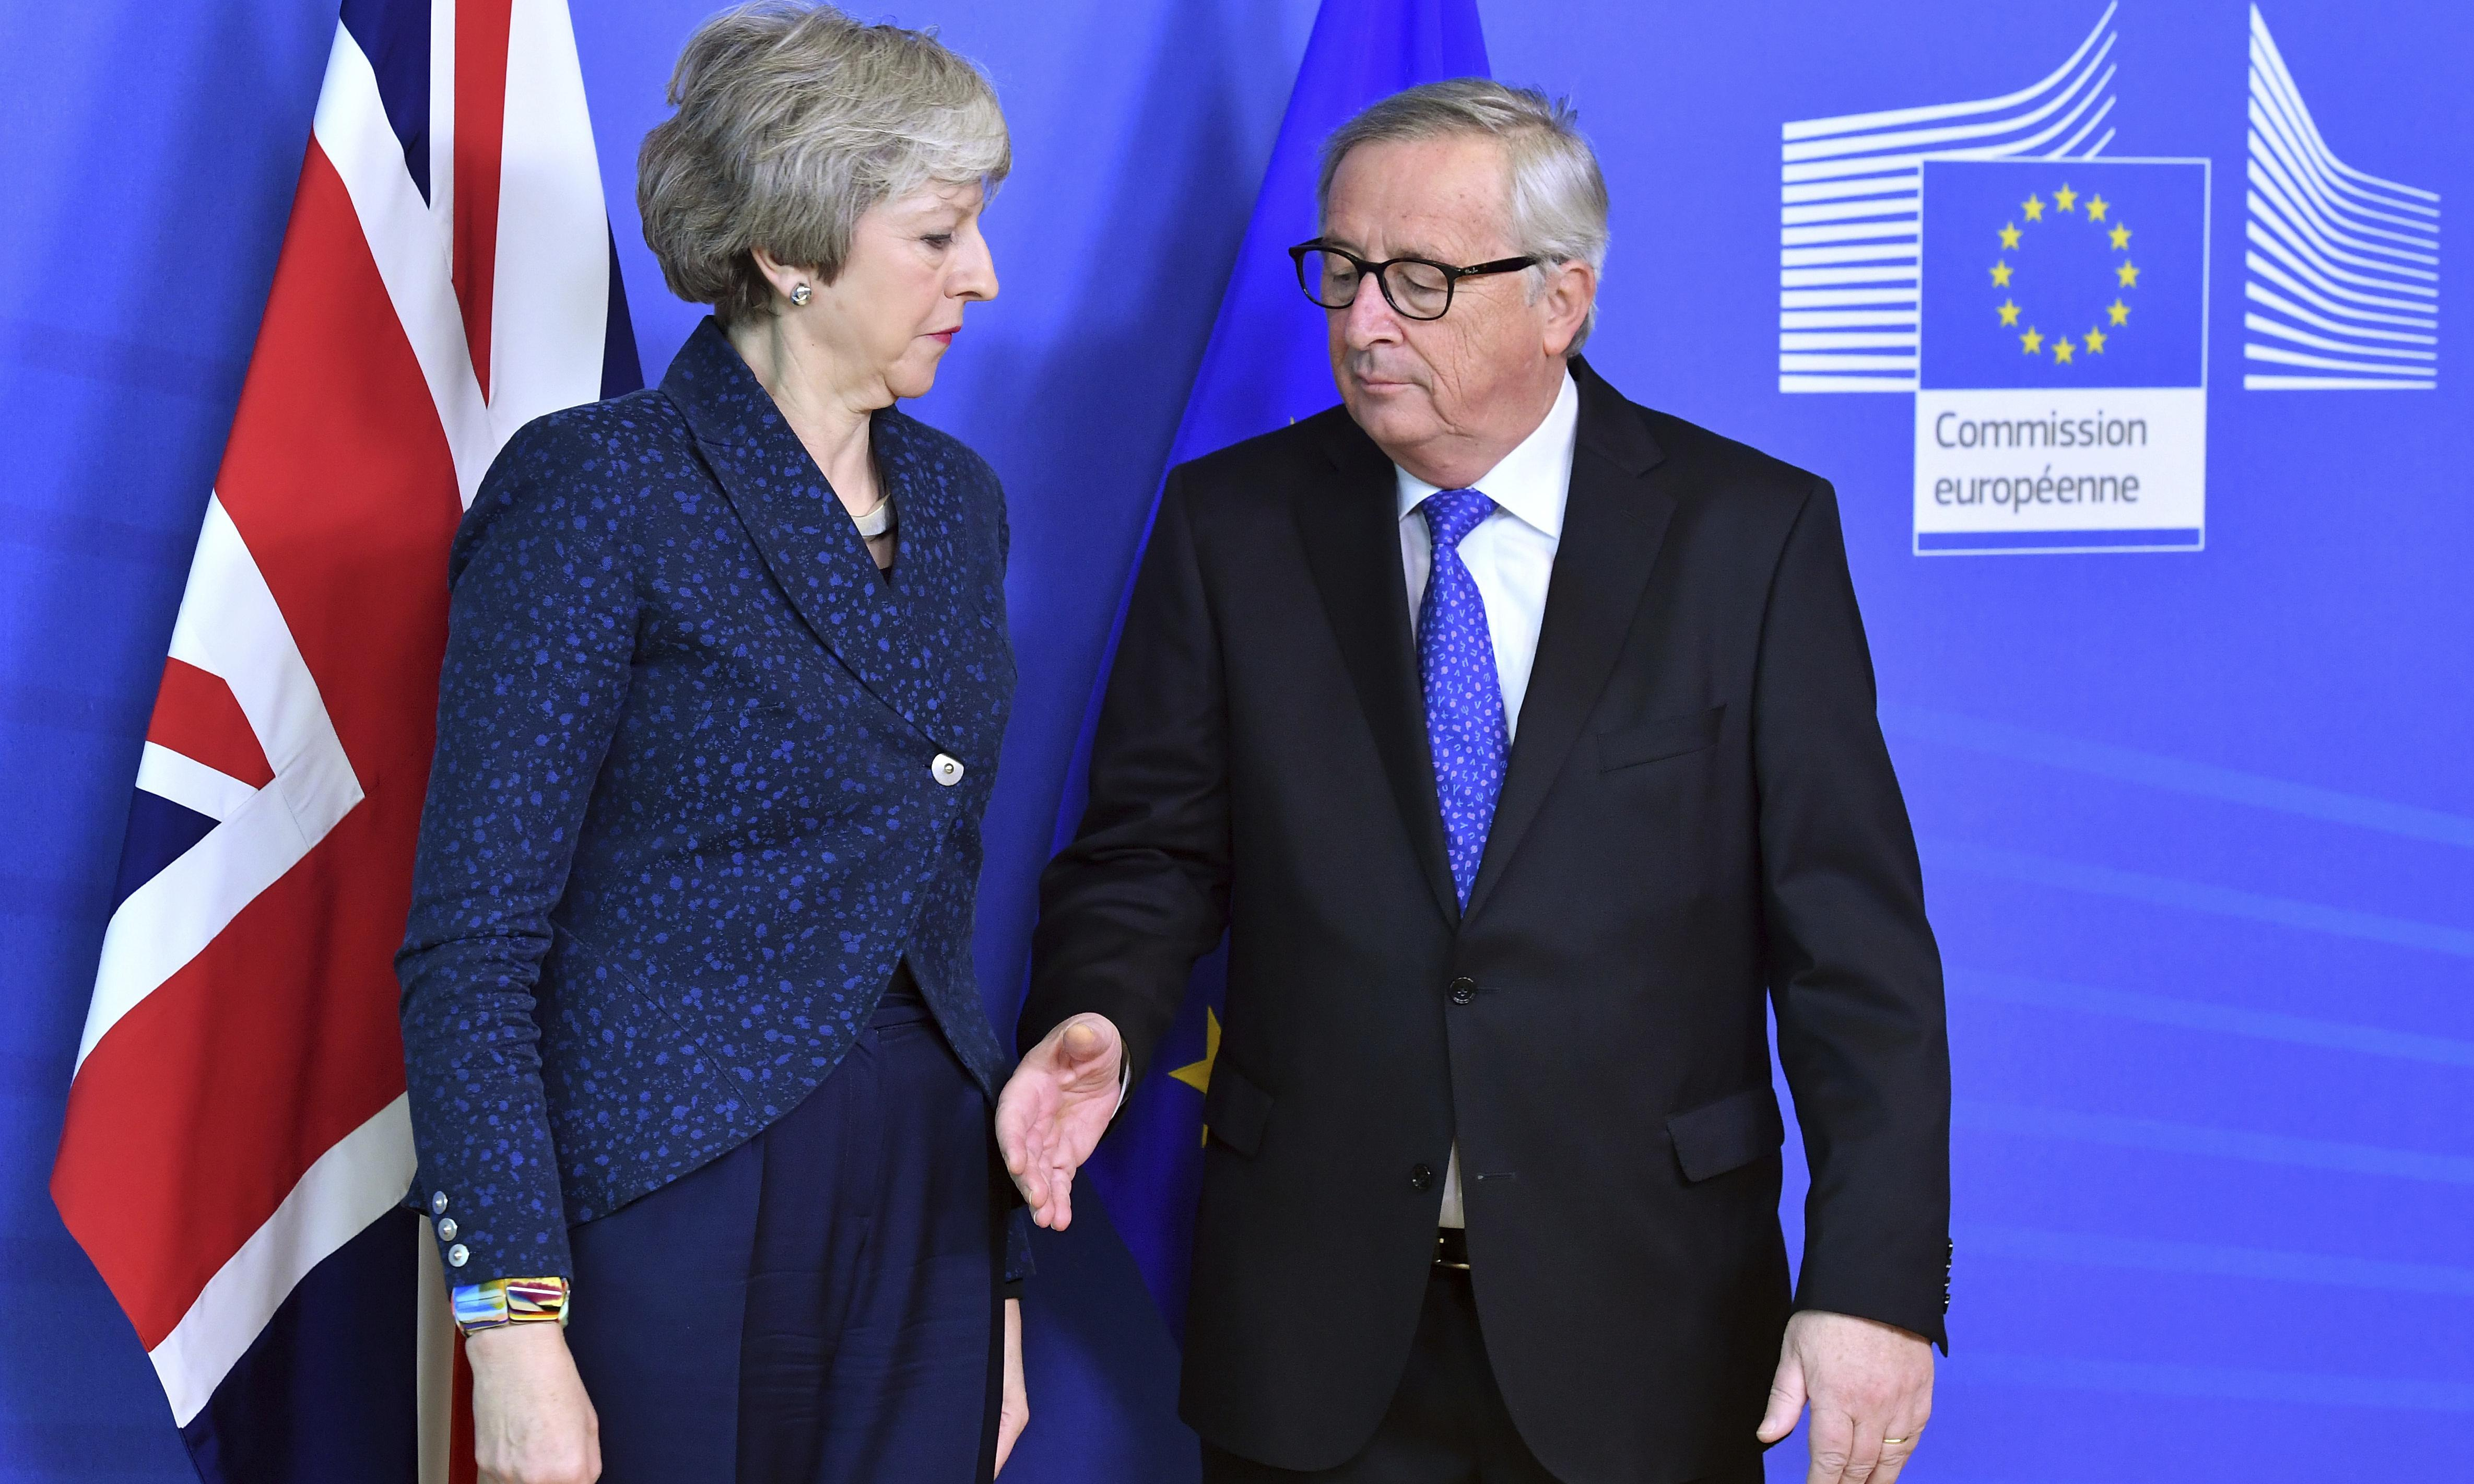 Brexit backstop talks: Theresa May to present EU with new proposals